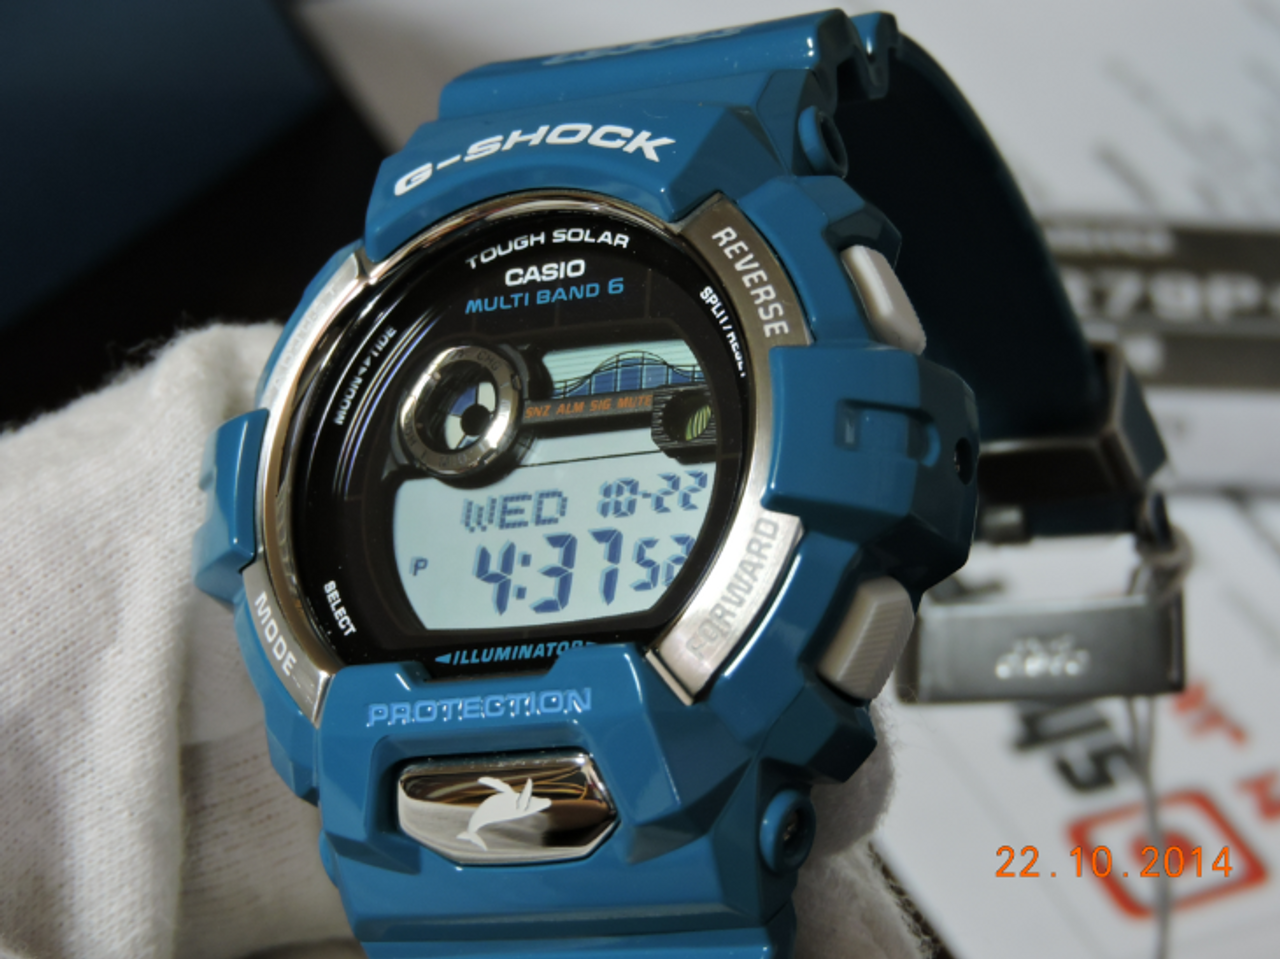 G-shock Love The Sea And The Earth